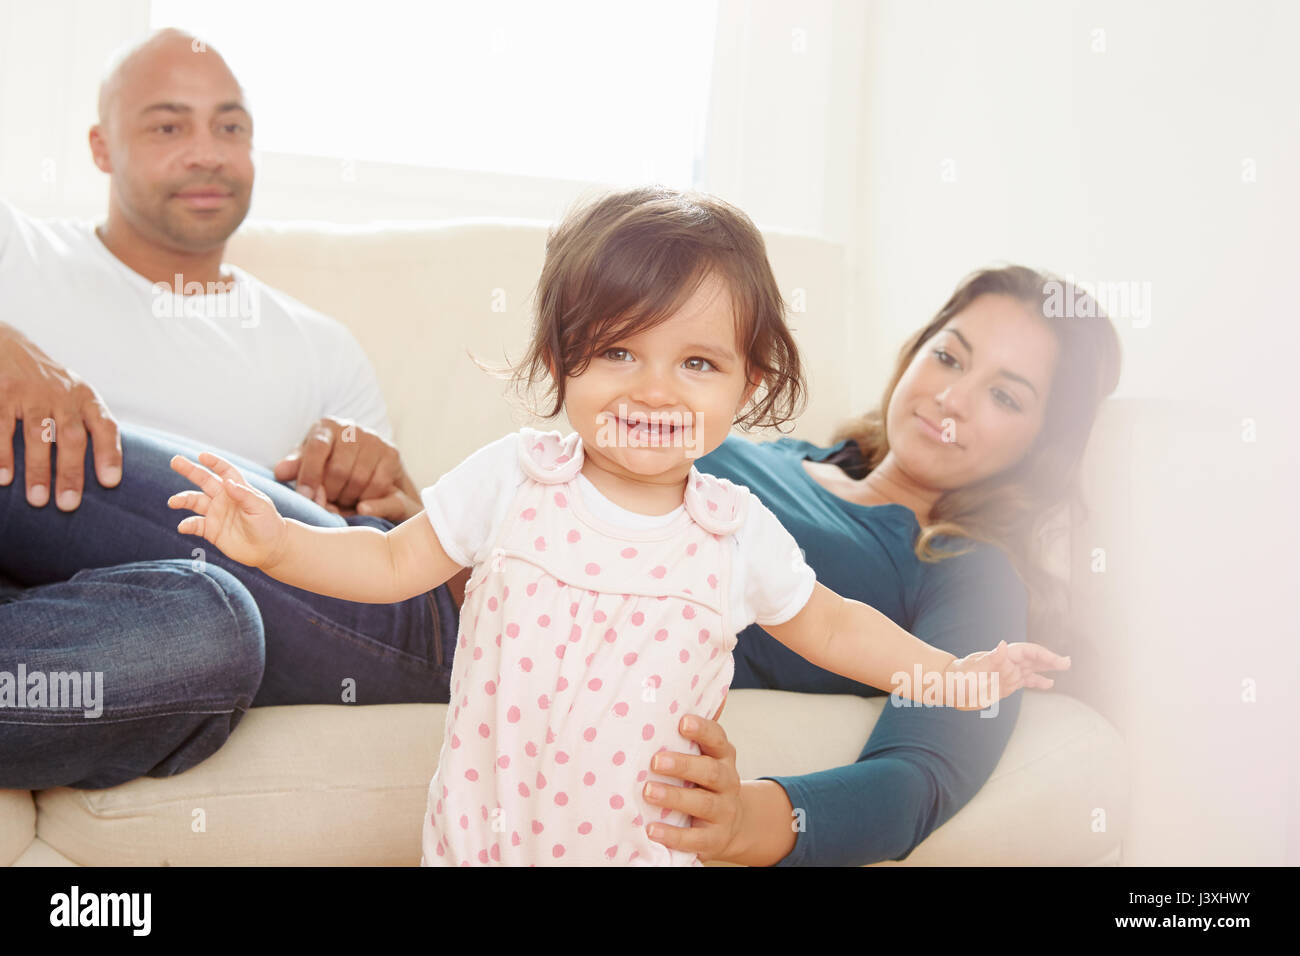 Mother on sofa giving baby daughter helping hand while toddling - Stock Image